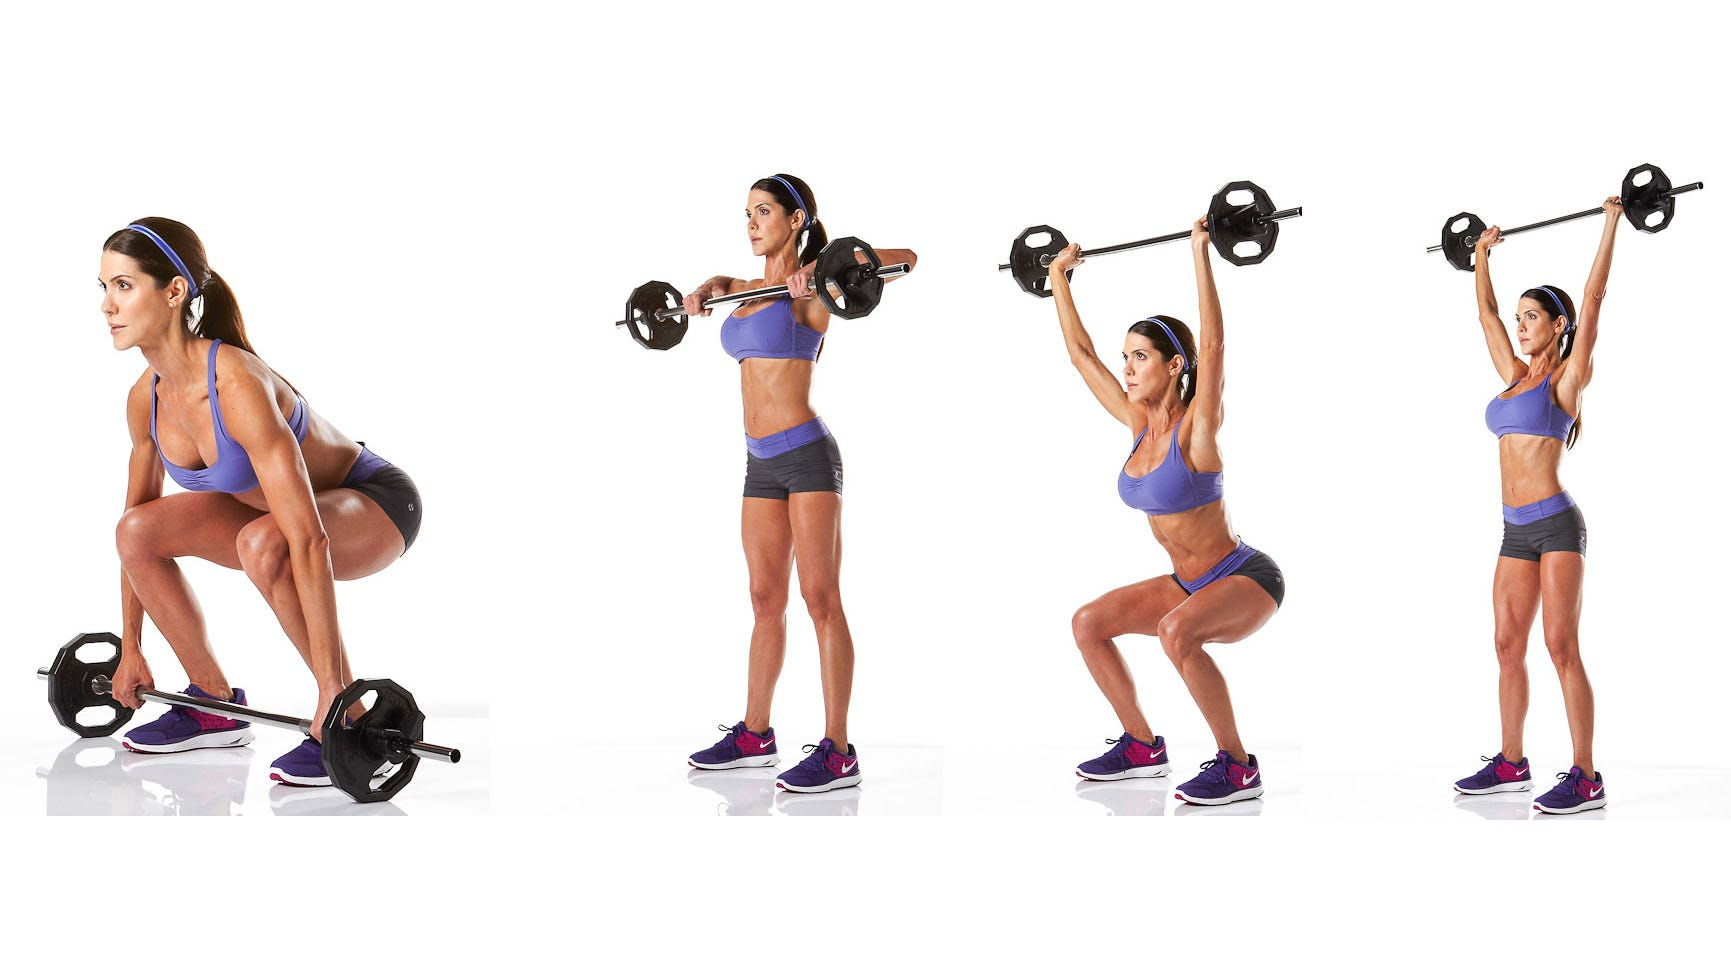 Montenegro get farm strong with this workout fox news latino